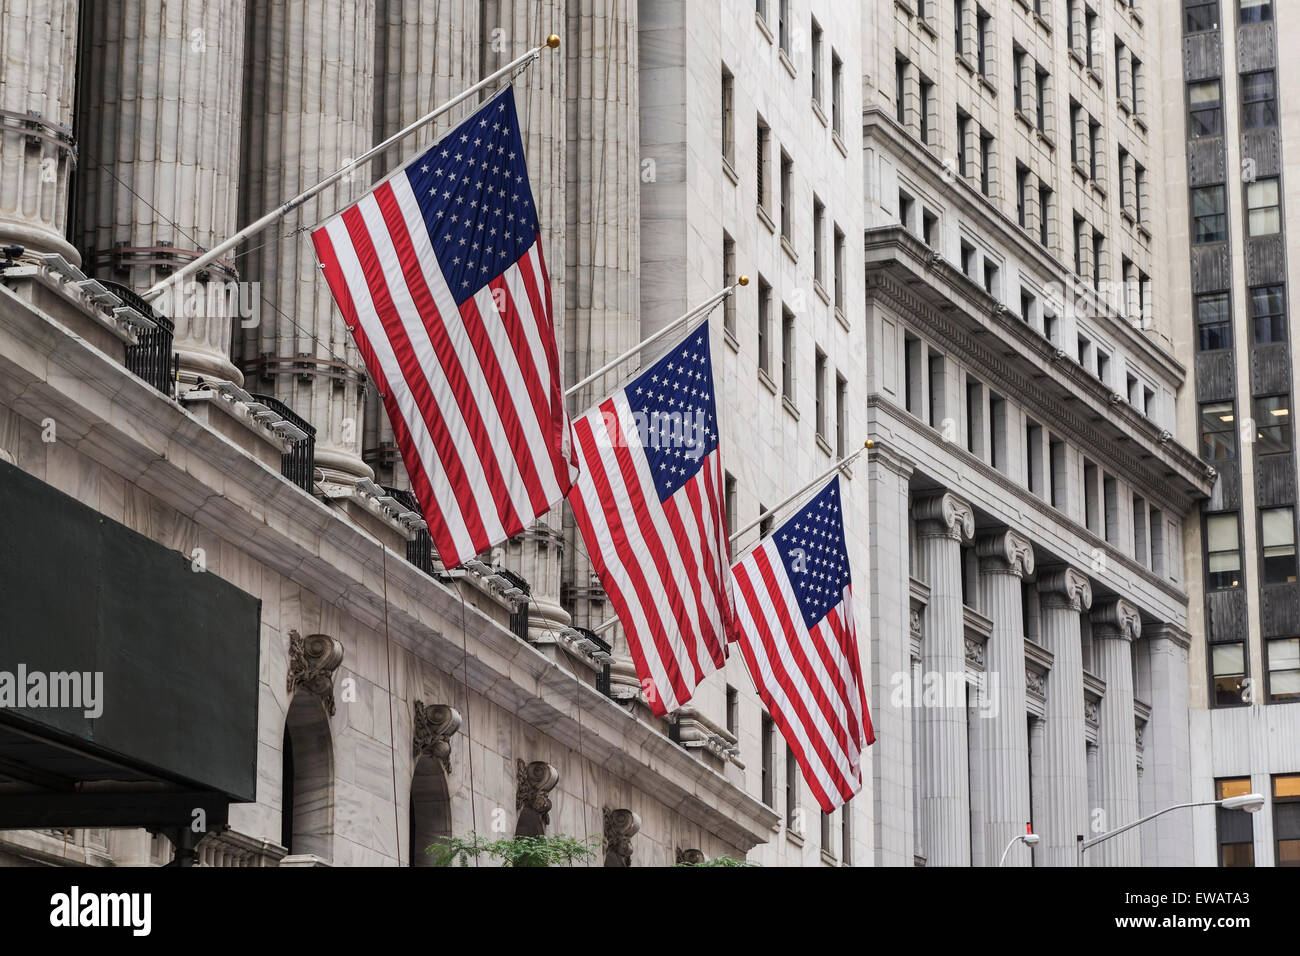 American flags at wallstreet, The New York Stock Exchange on Wall Street, NYC, lower Manhattan, United states. - Stock Image